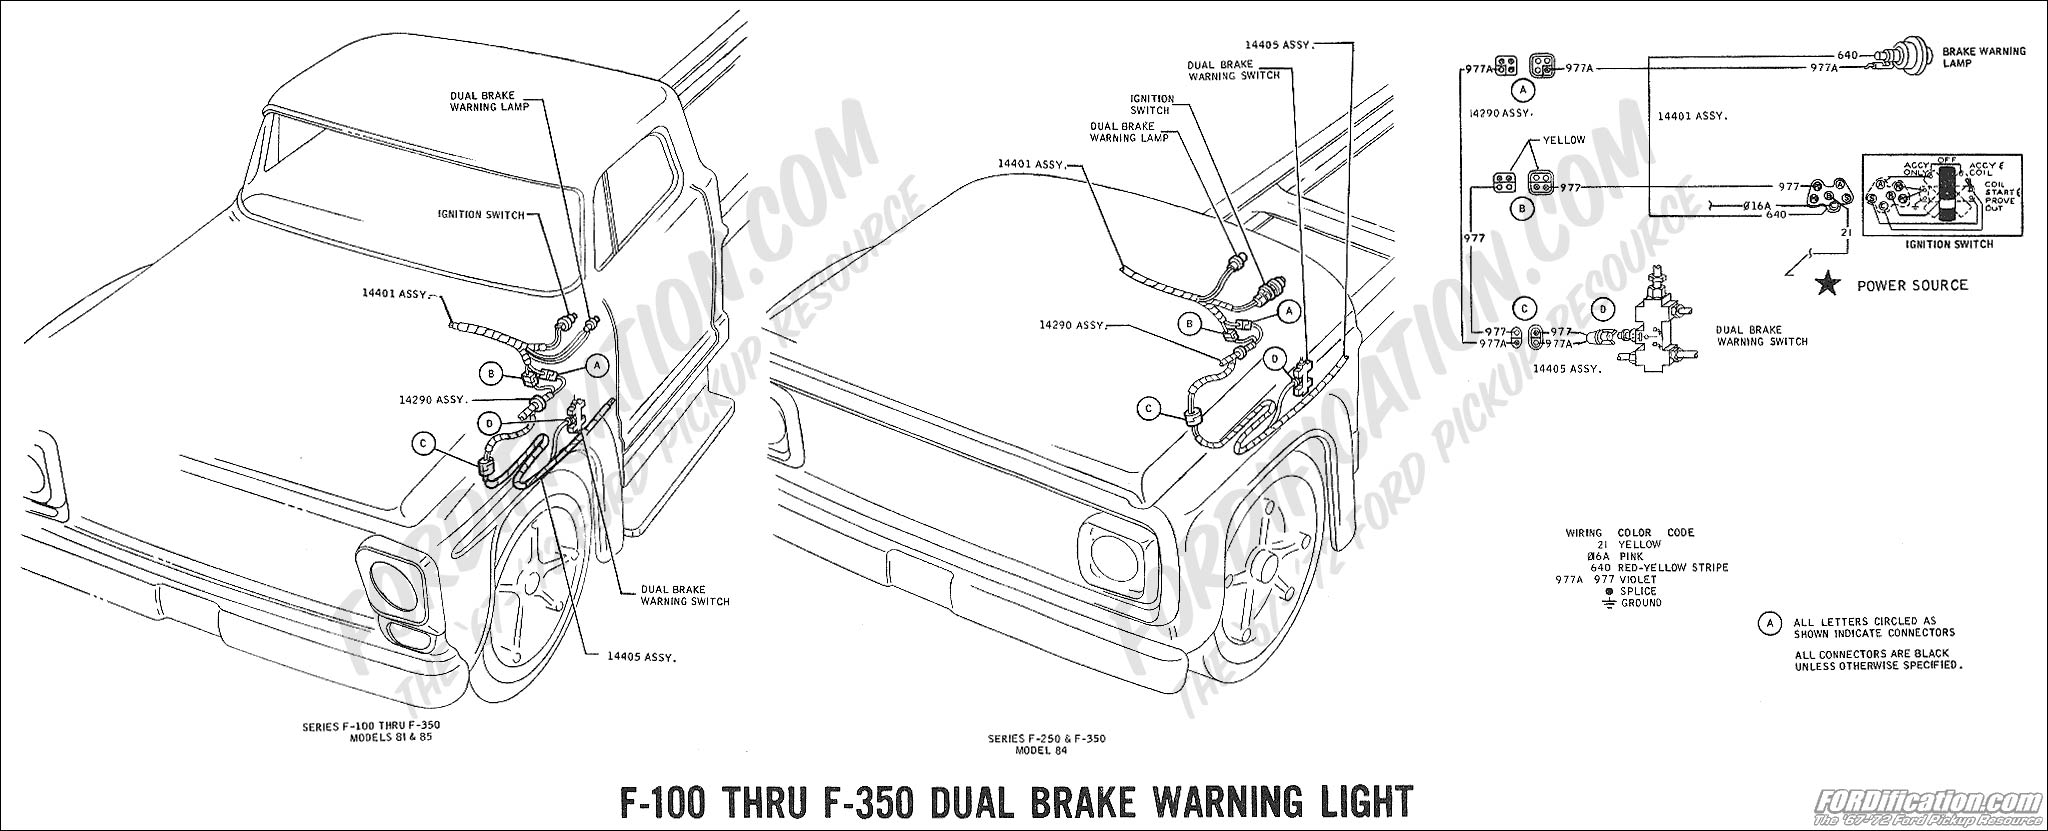 Wiring Diagram For A 1999 F250, Wiring, Get Free Image